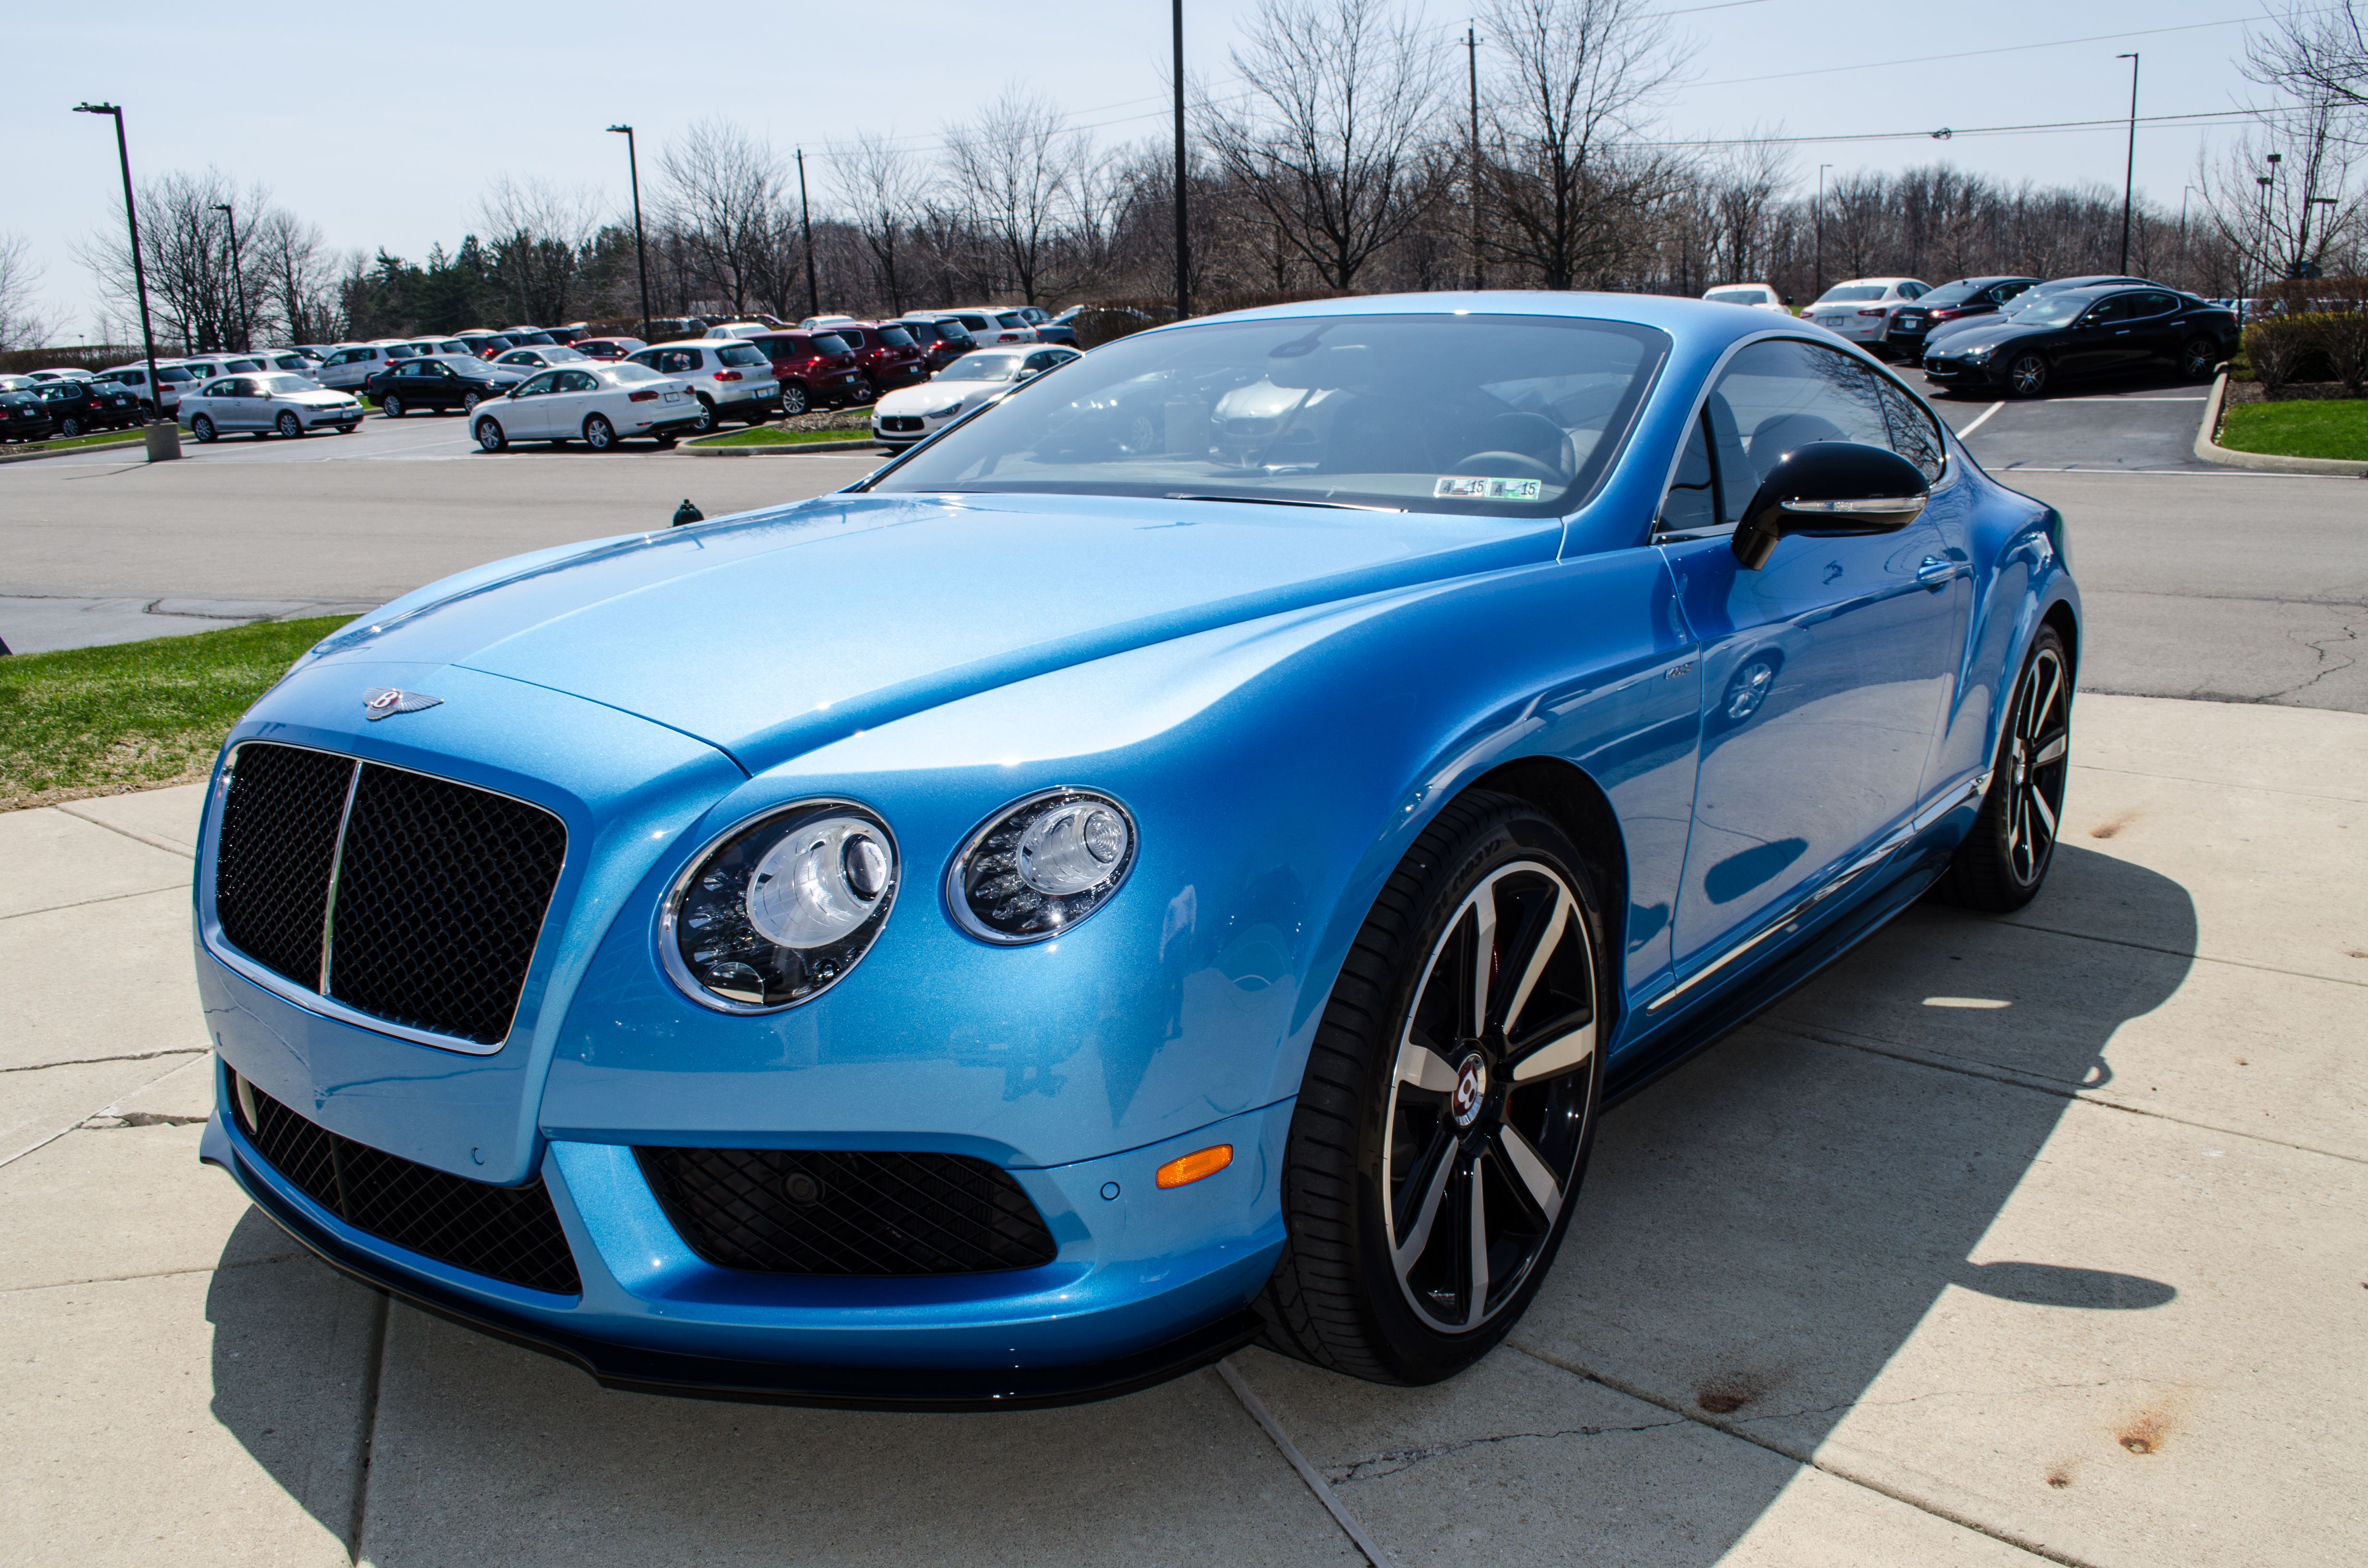 2014 Bentley Continental Gt V8 S Review Quality Comfort And Luxury